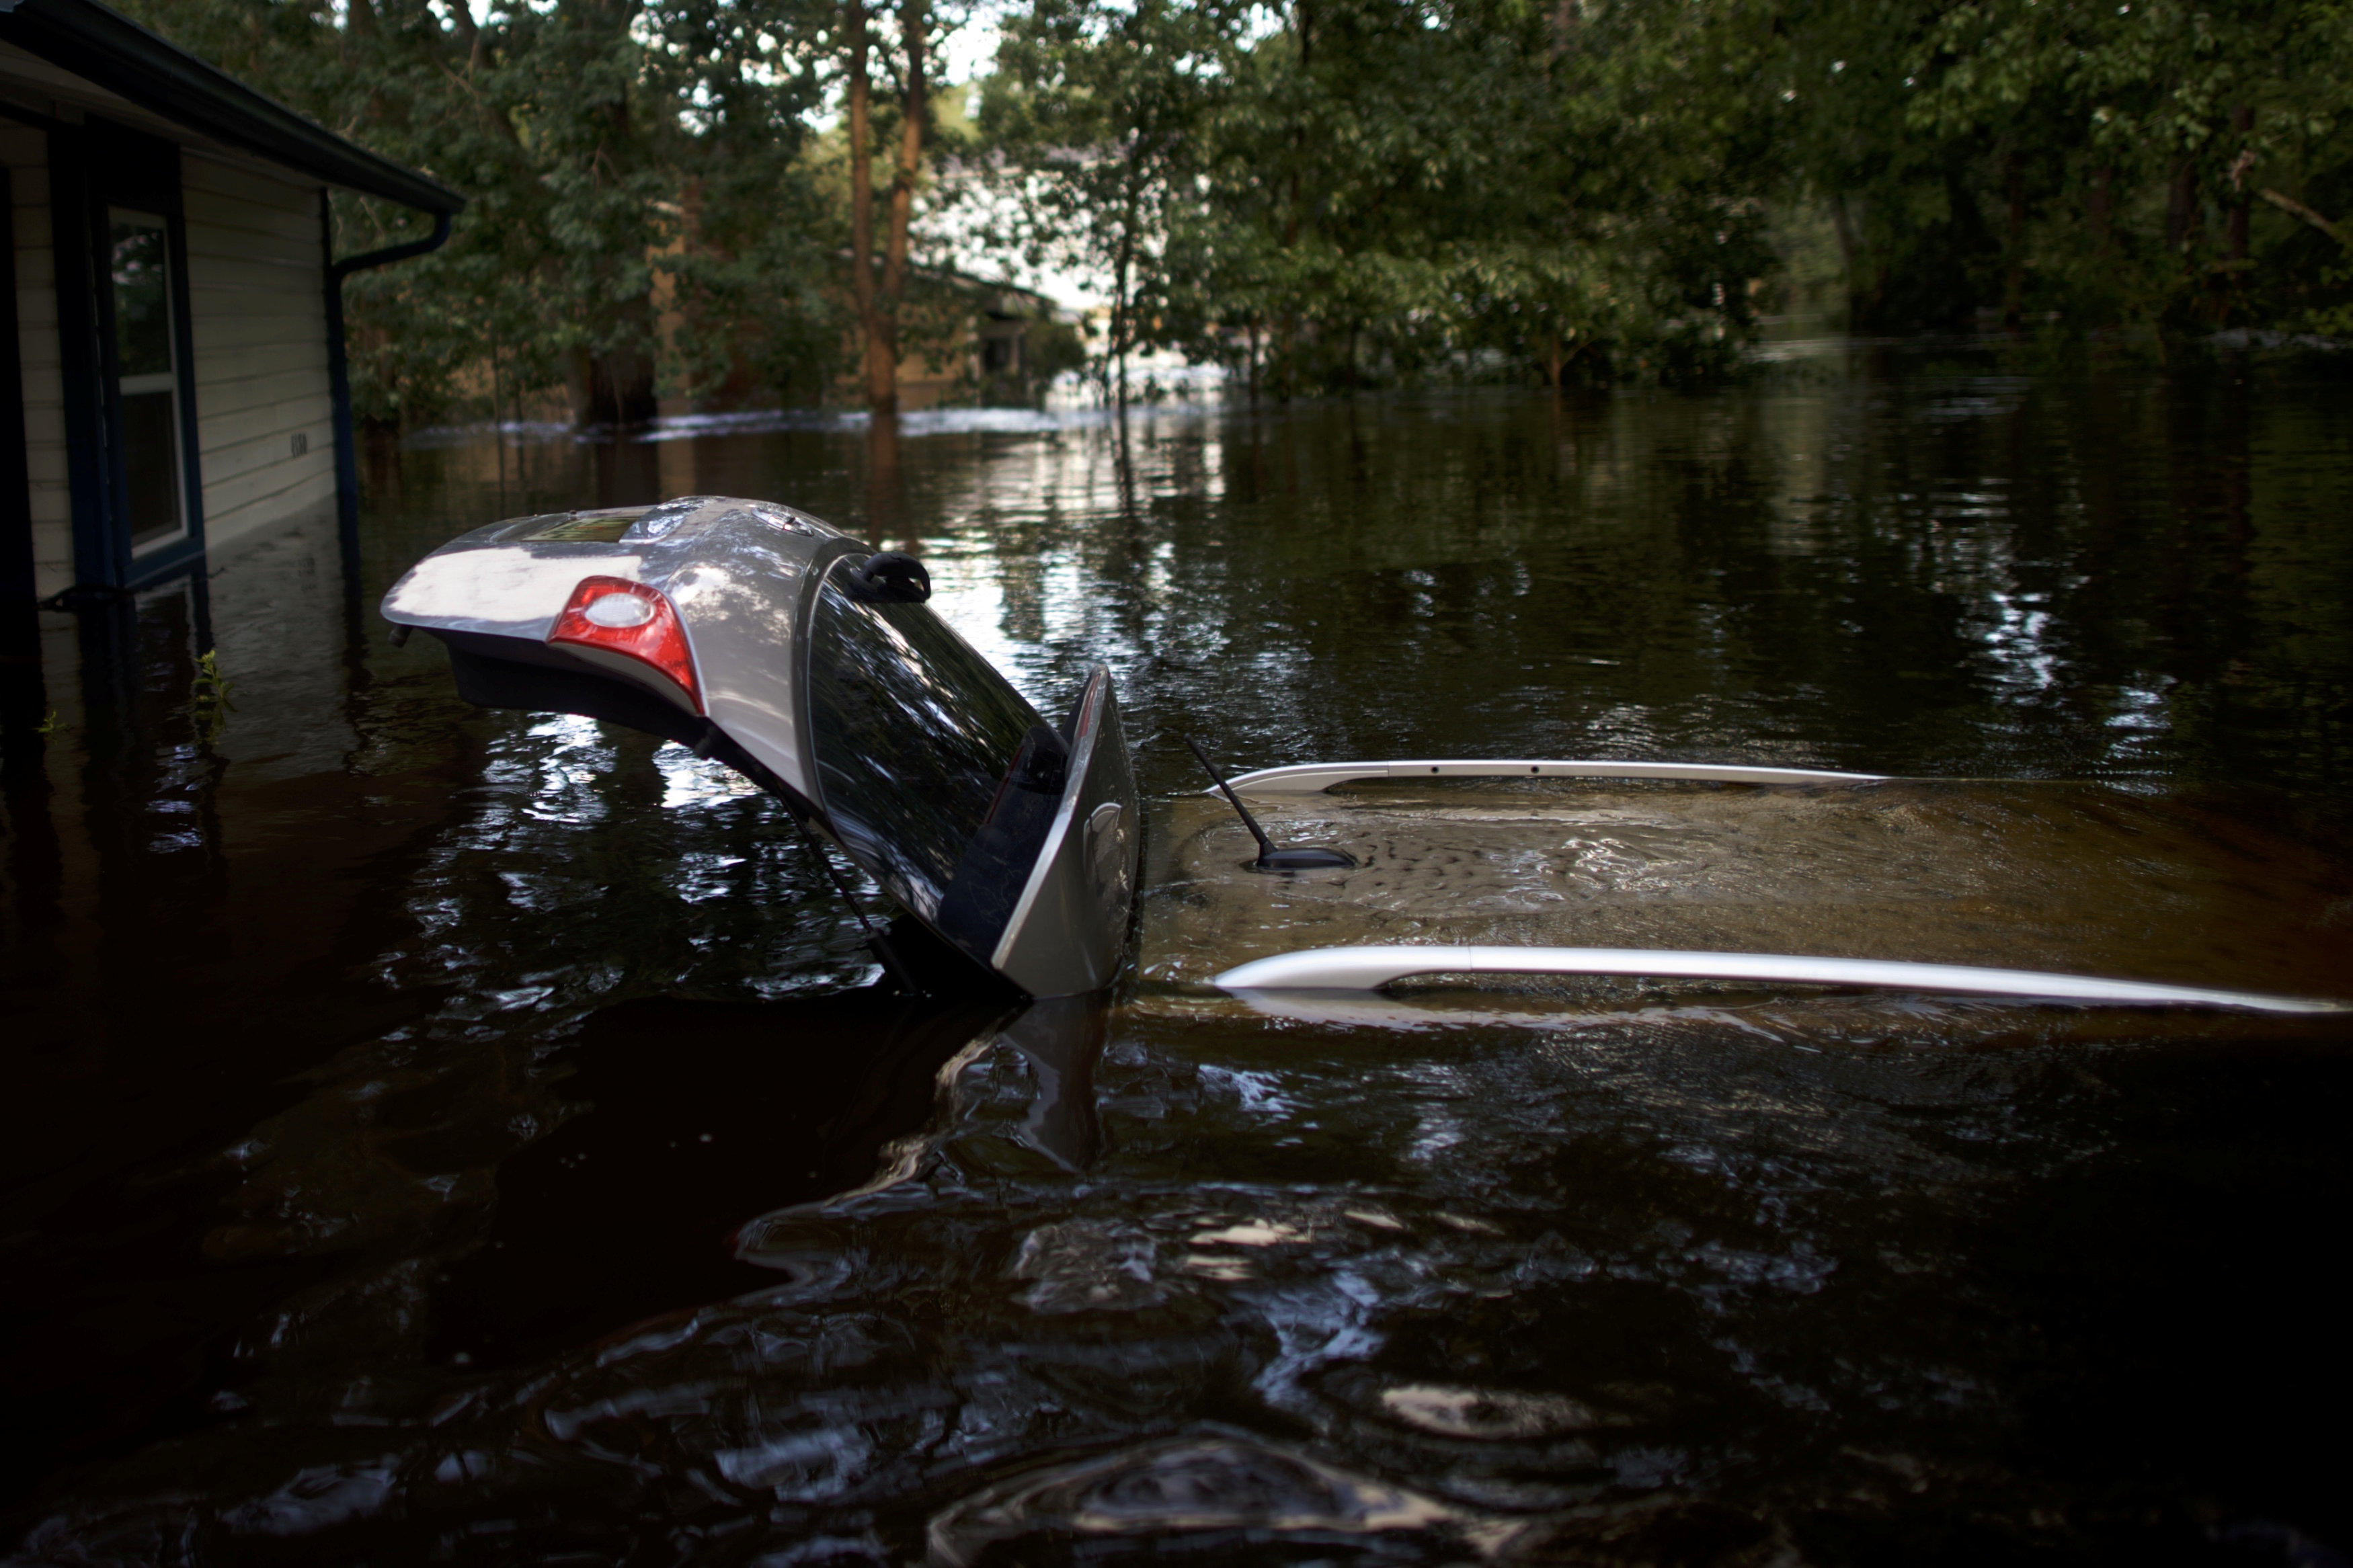 Flood waters engulf a car after Hurricane Irma in Jacksonville, Florida, U.S. September 12, 2017. REUTERS/Mark Makela